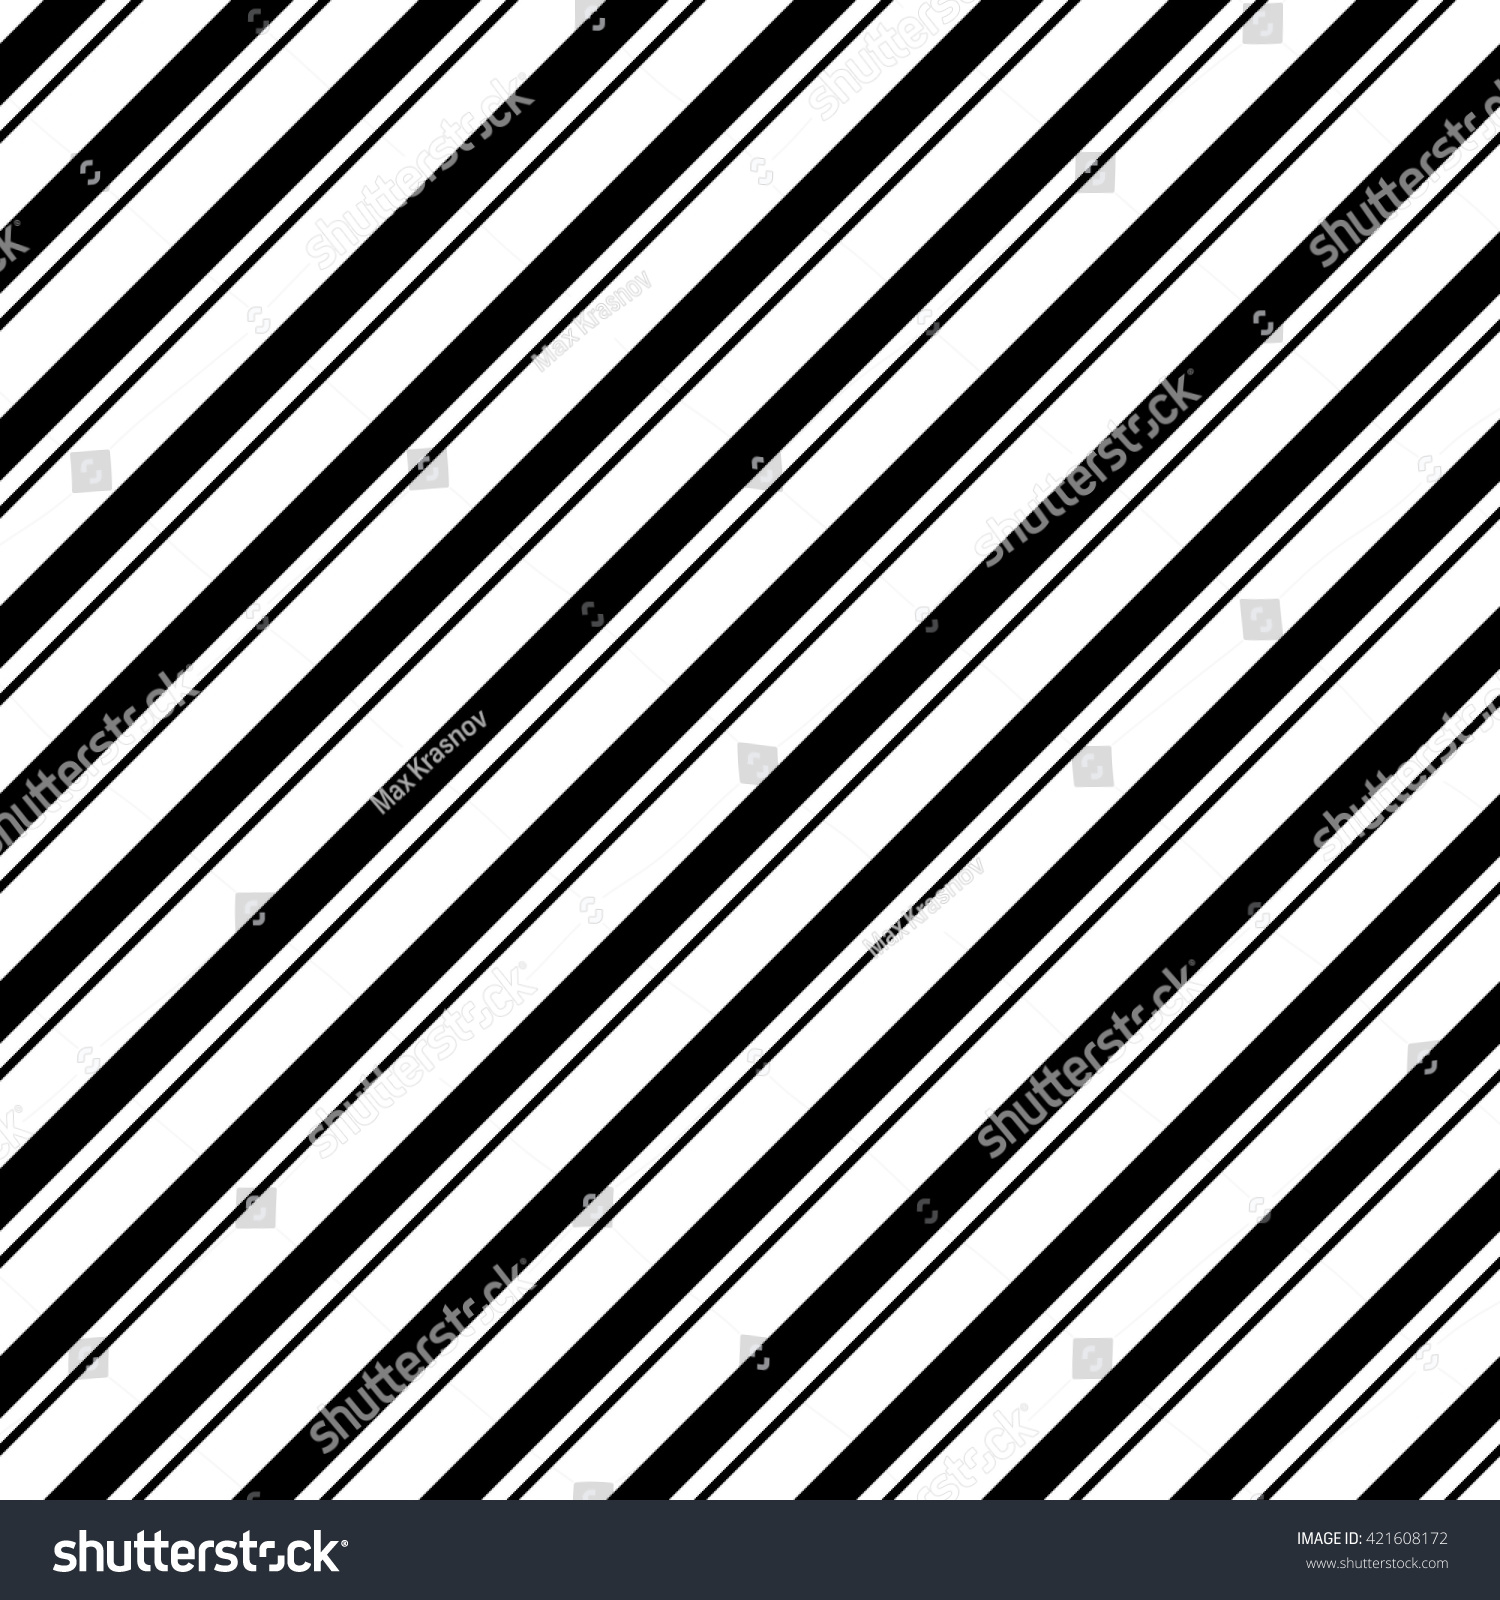 And black diagonal stripes background seamless background or wallpaper - Seamless Diagonal Stripe Pattern Vector Black And White Background Abstract Striped Wallpaper